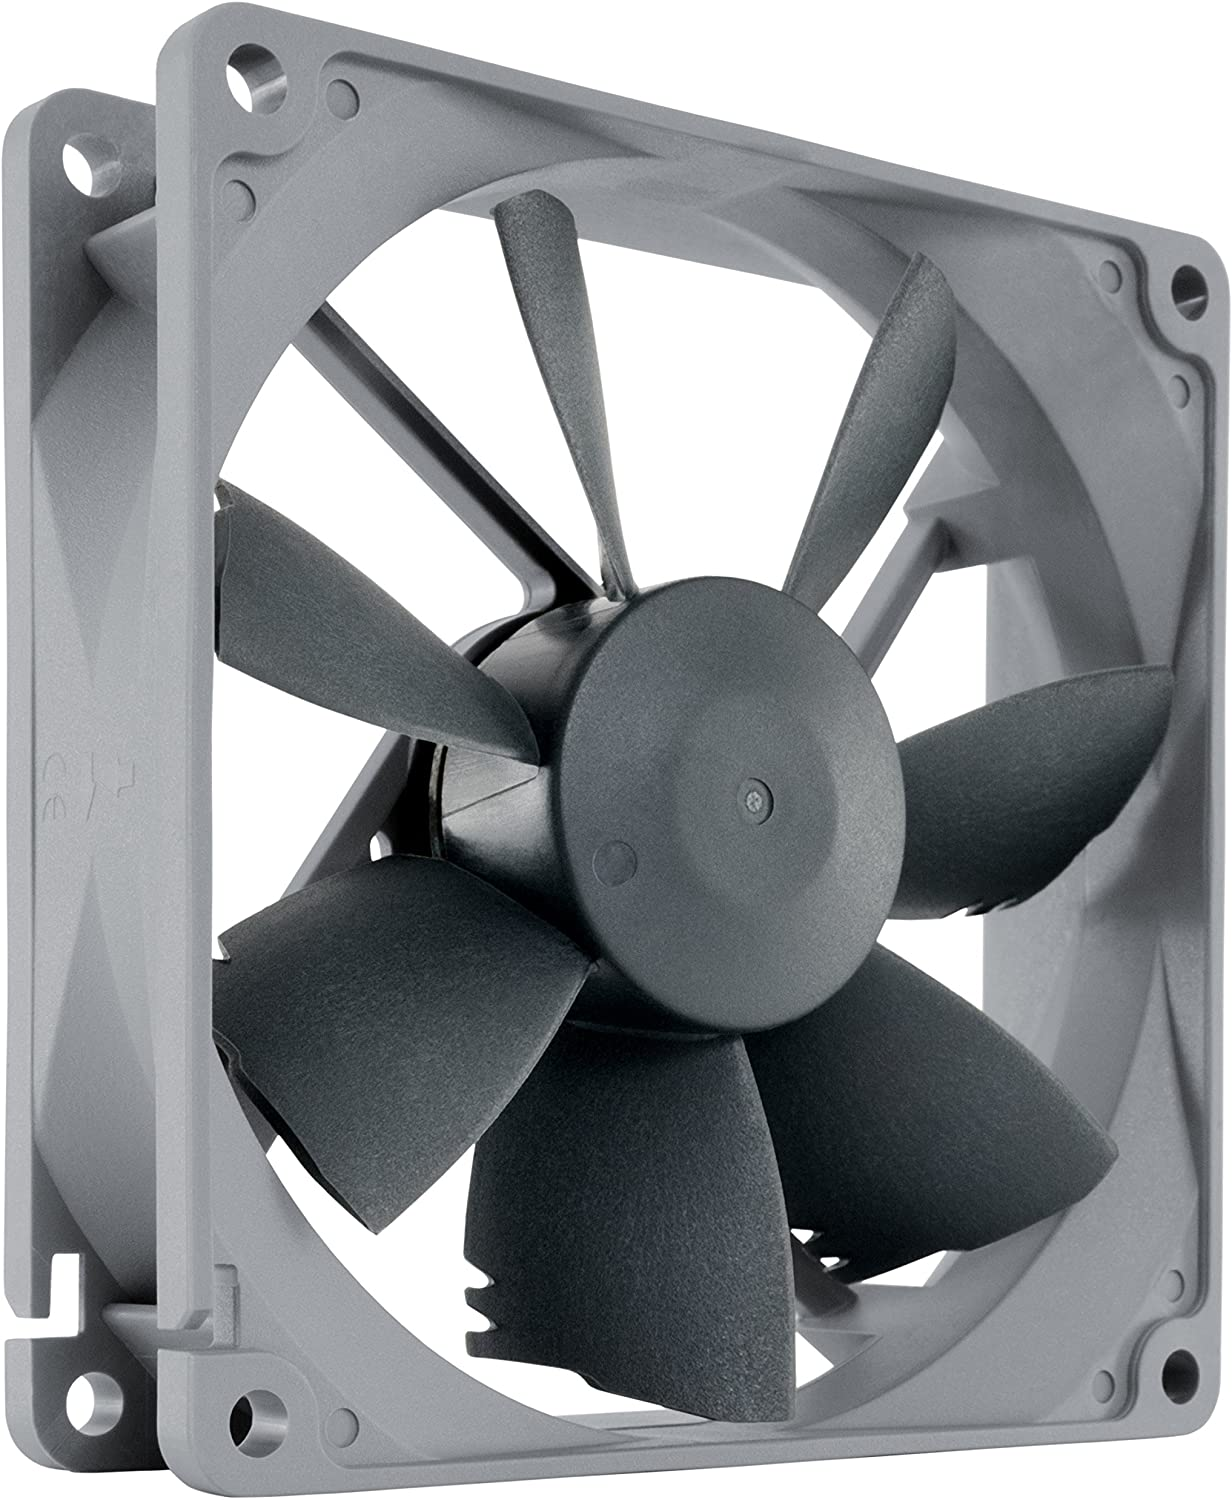 Noctua NF-B9 redux-1600, High Performance Cooling Fan, 3-Pin, 1600 RPM (92mm, Grey)